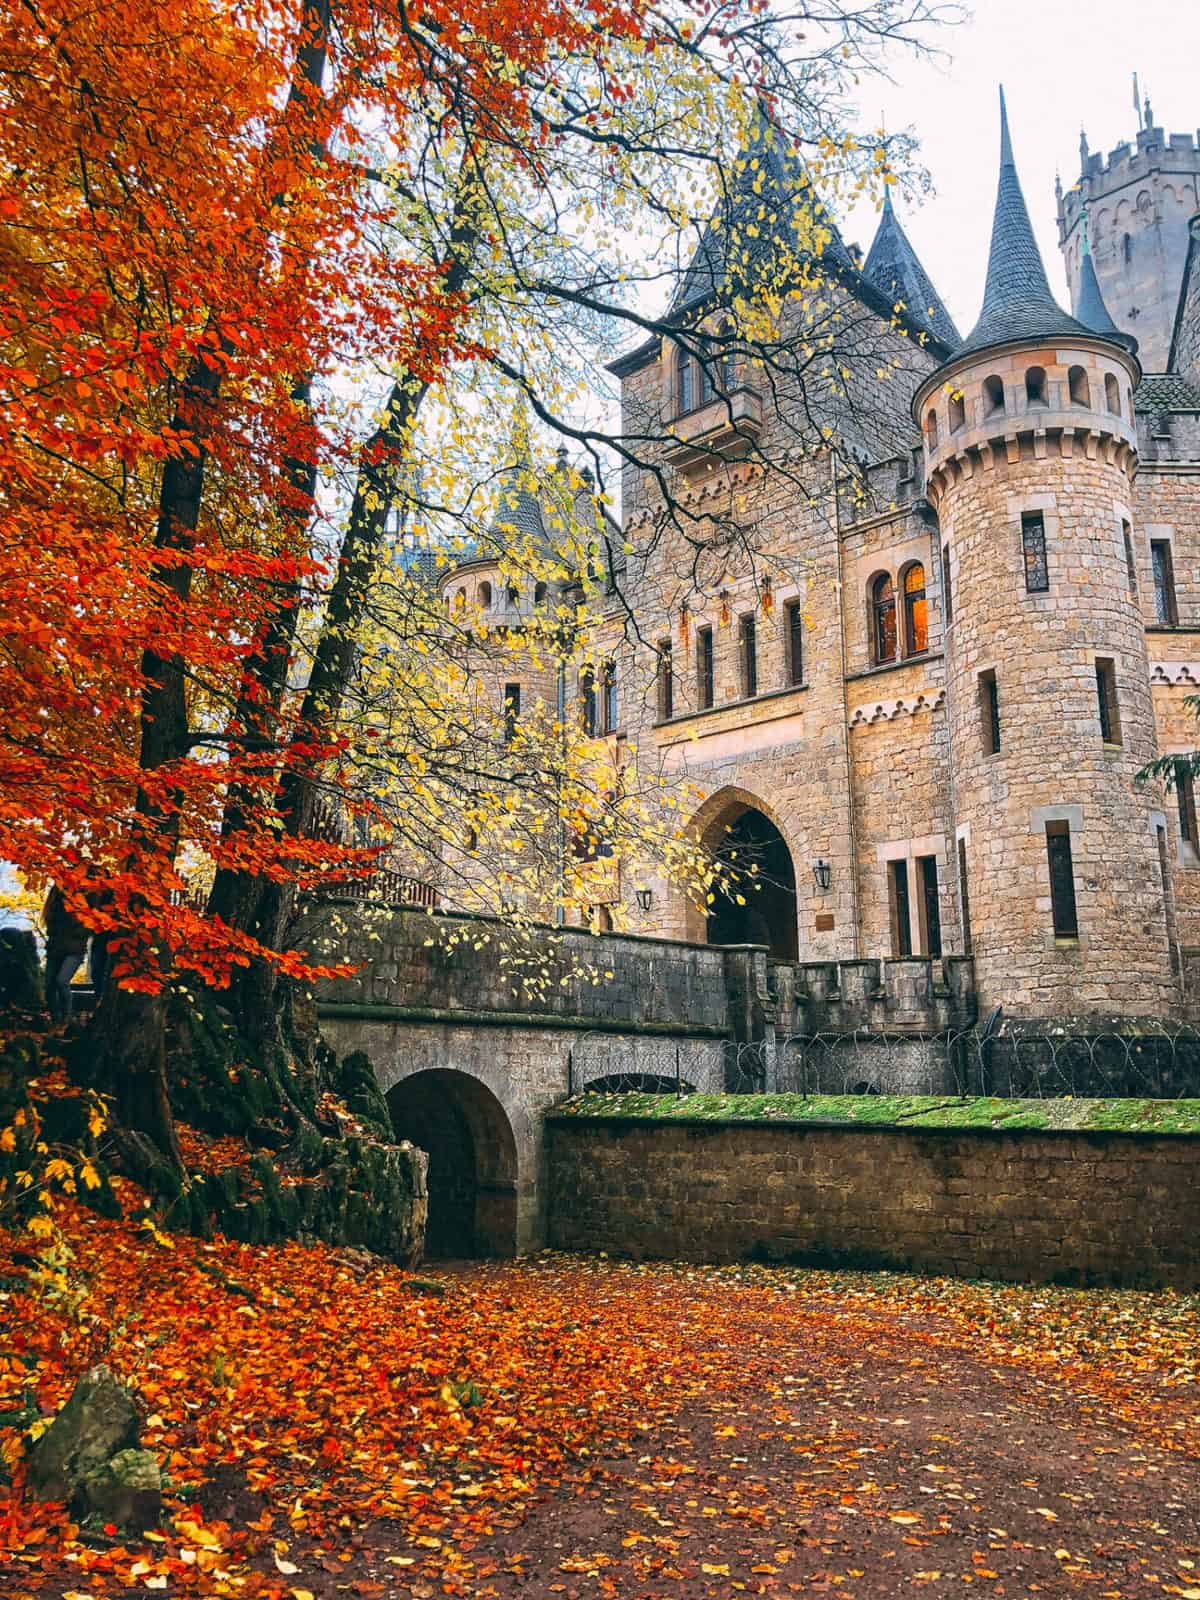 An old castle surrounded by autumn leaves